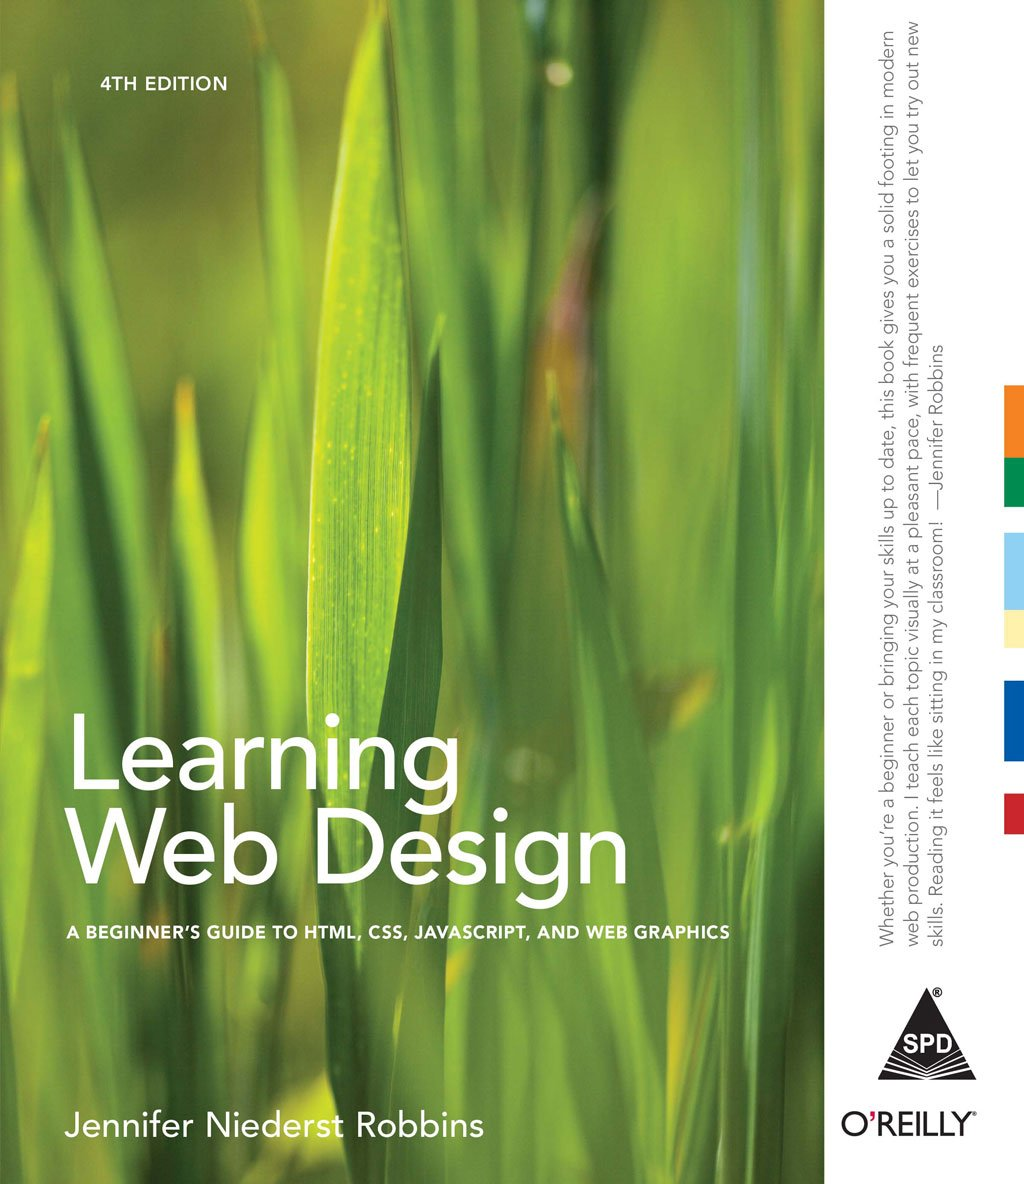 Learning Web Design A Beginner S Guide To Html Css Java Script A Beginner S Guide To Html Css Javascript And Web Graphics Amazon In Robbins Jennifer Niederst Books